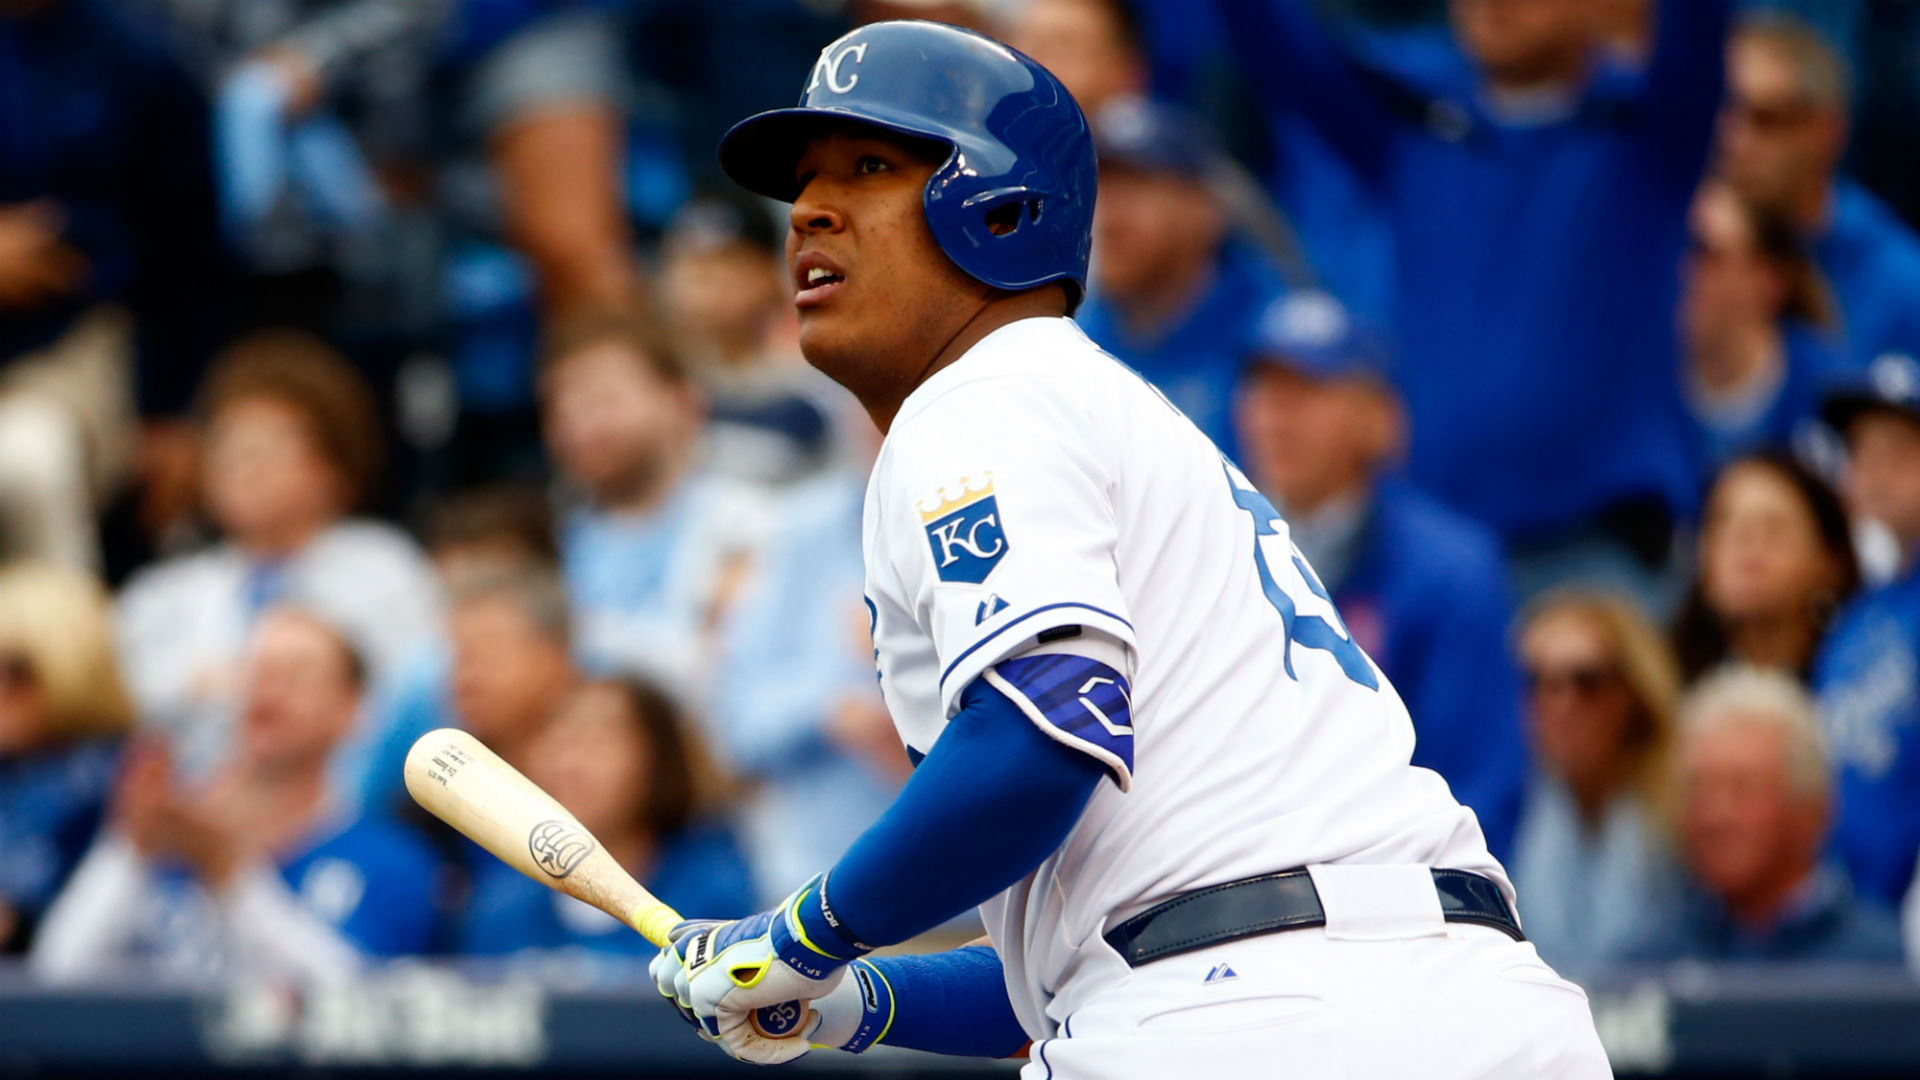 Salvador Perez suffers grade 2 MCL tear after slipping while carrying luggage